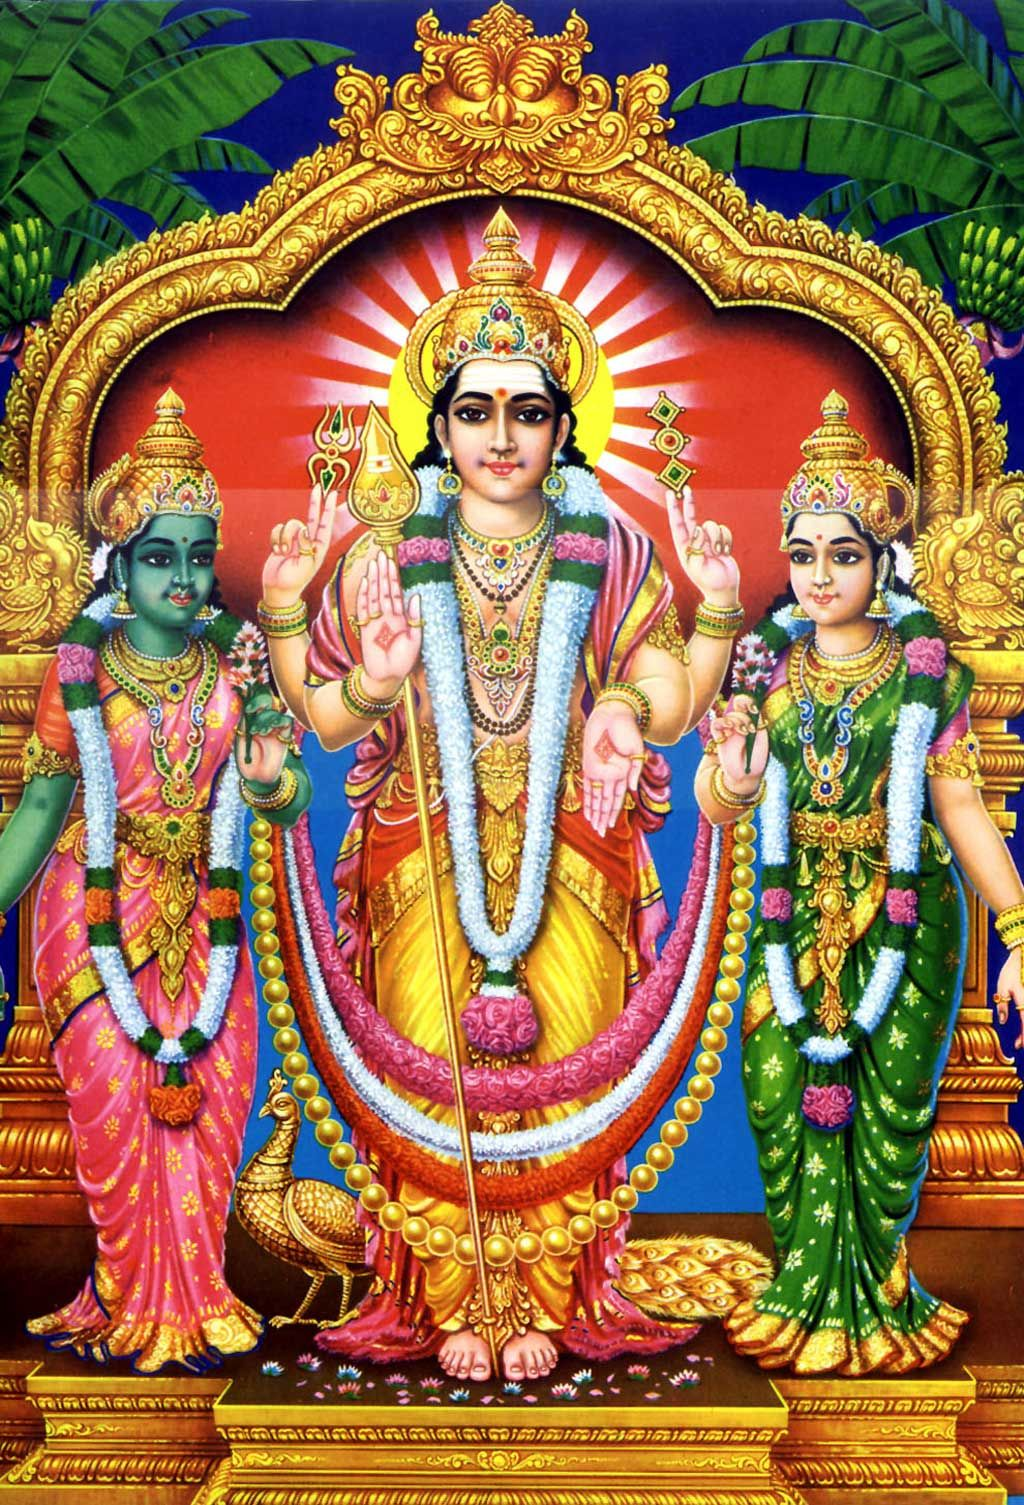 Cool Wallpaper Lord Kartikeya - 8795aaf15dbdd8d22e4e9758d1e256c2  Trends_672665.jpg